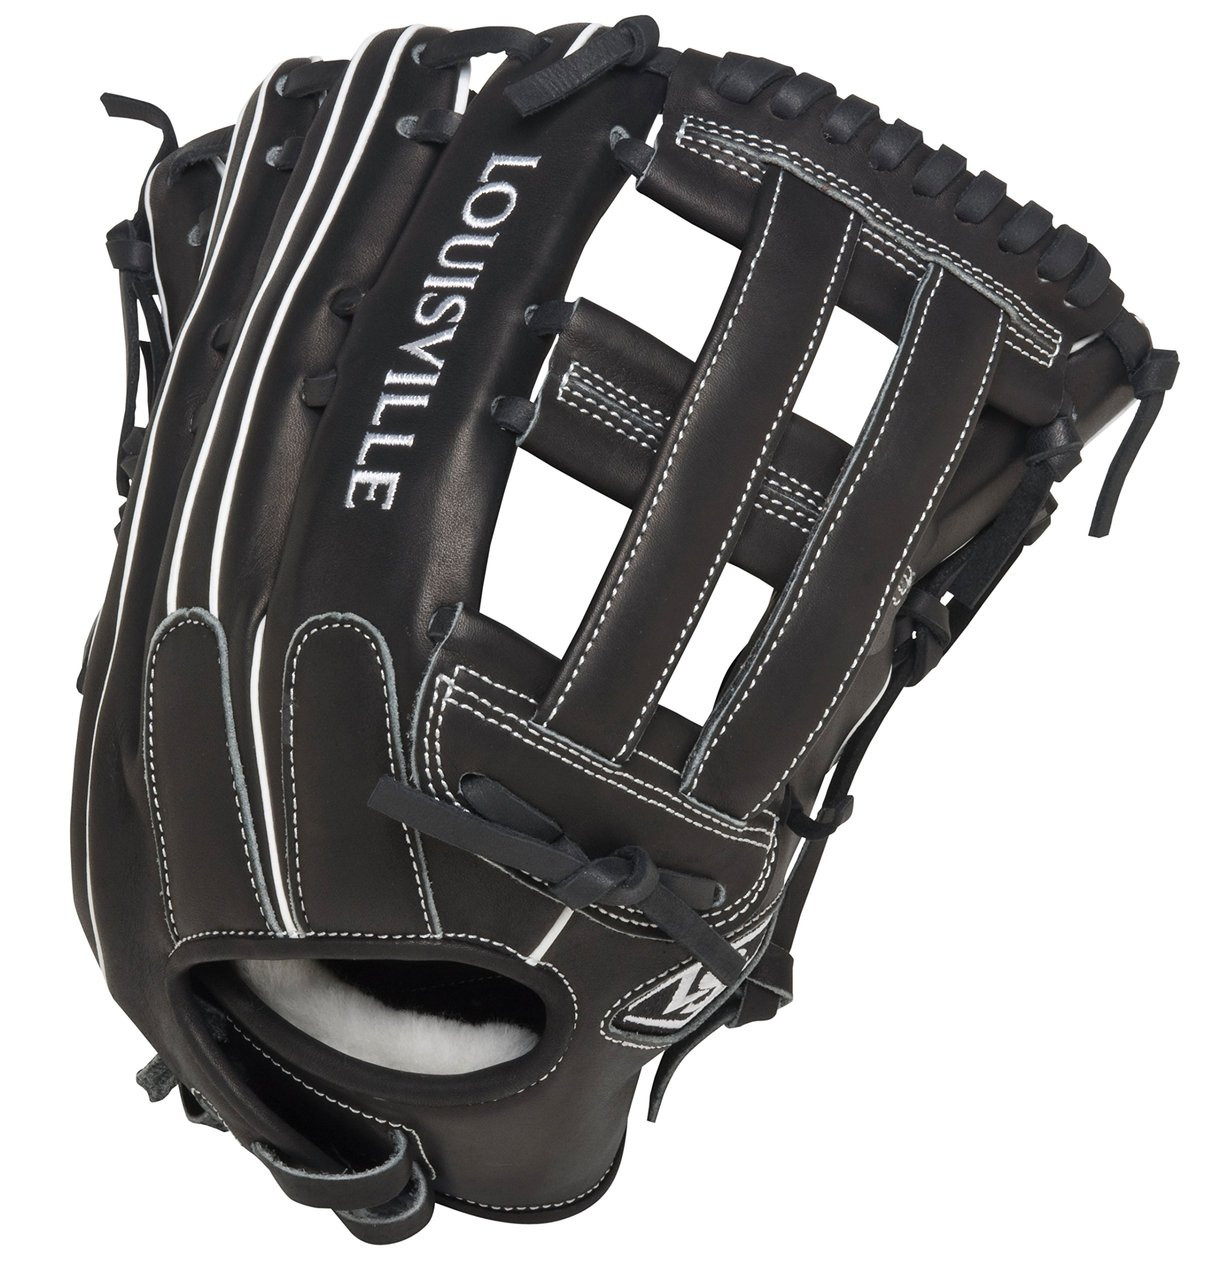 2278d4626b4 Louisville Slugger Super Z Black 13.5 inch Slow Pitch Softball Glove ...